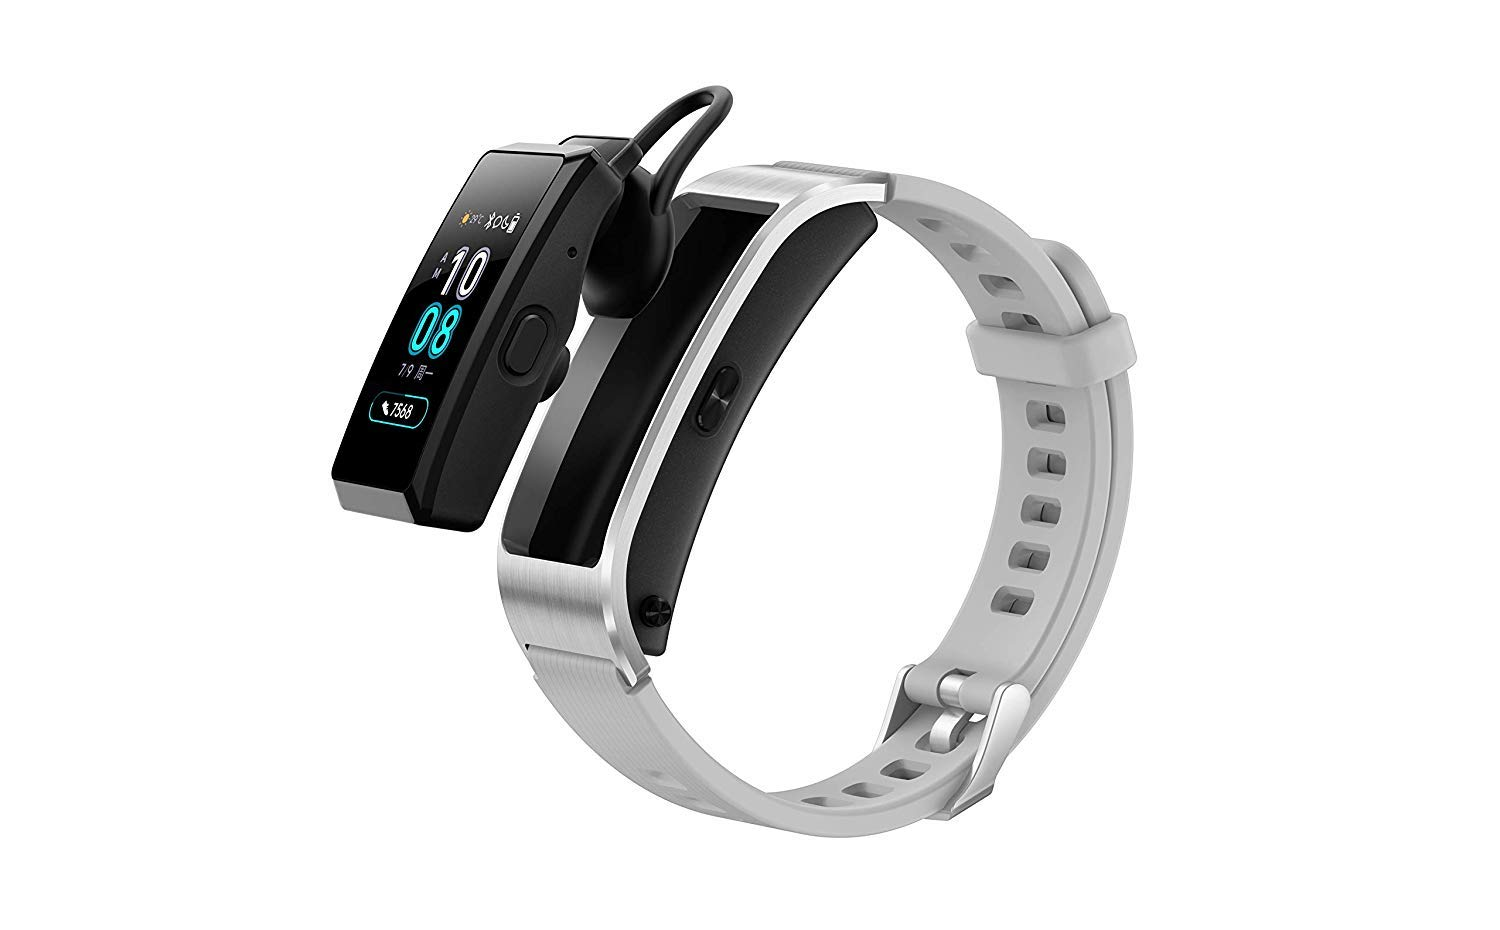 Huawei TalkBand B5 113 AMOLED 2 In 1 Fitness Wristband Activity Tracker Bluetooth Headset Smartwatch With Realtime Heart Monitor Sleeping Monitor And Connected GPS Gracier Gray